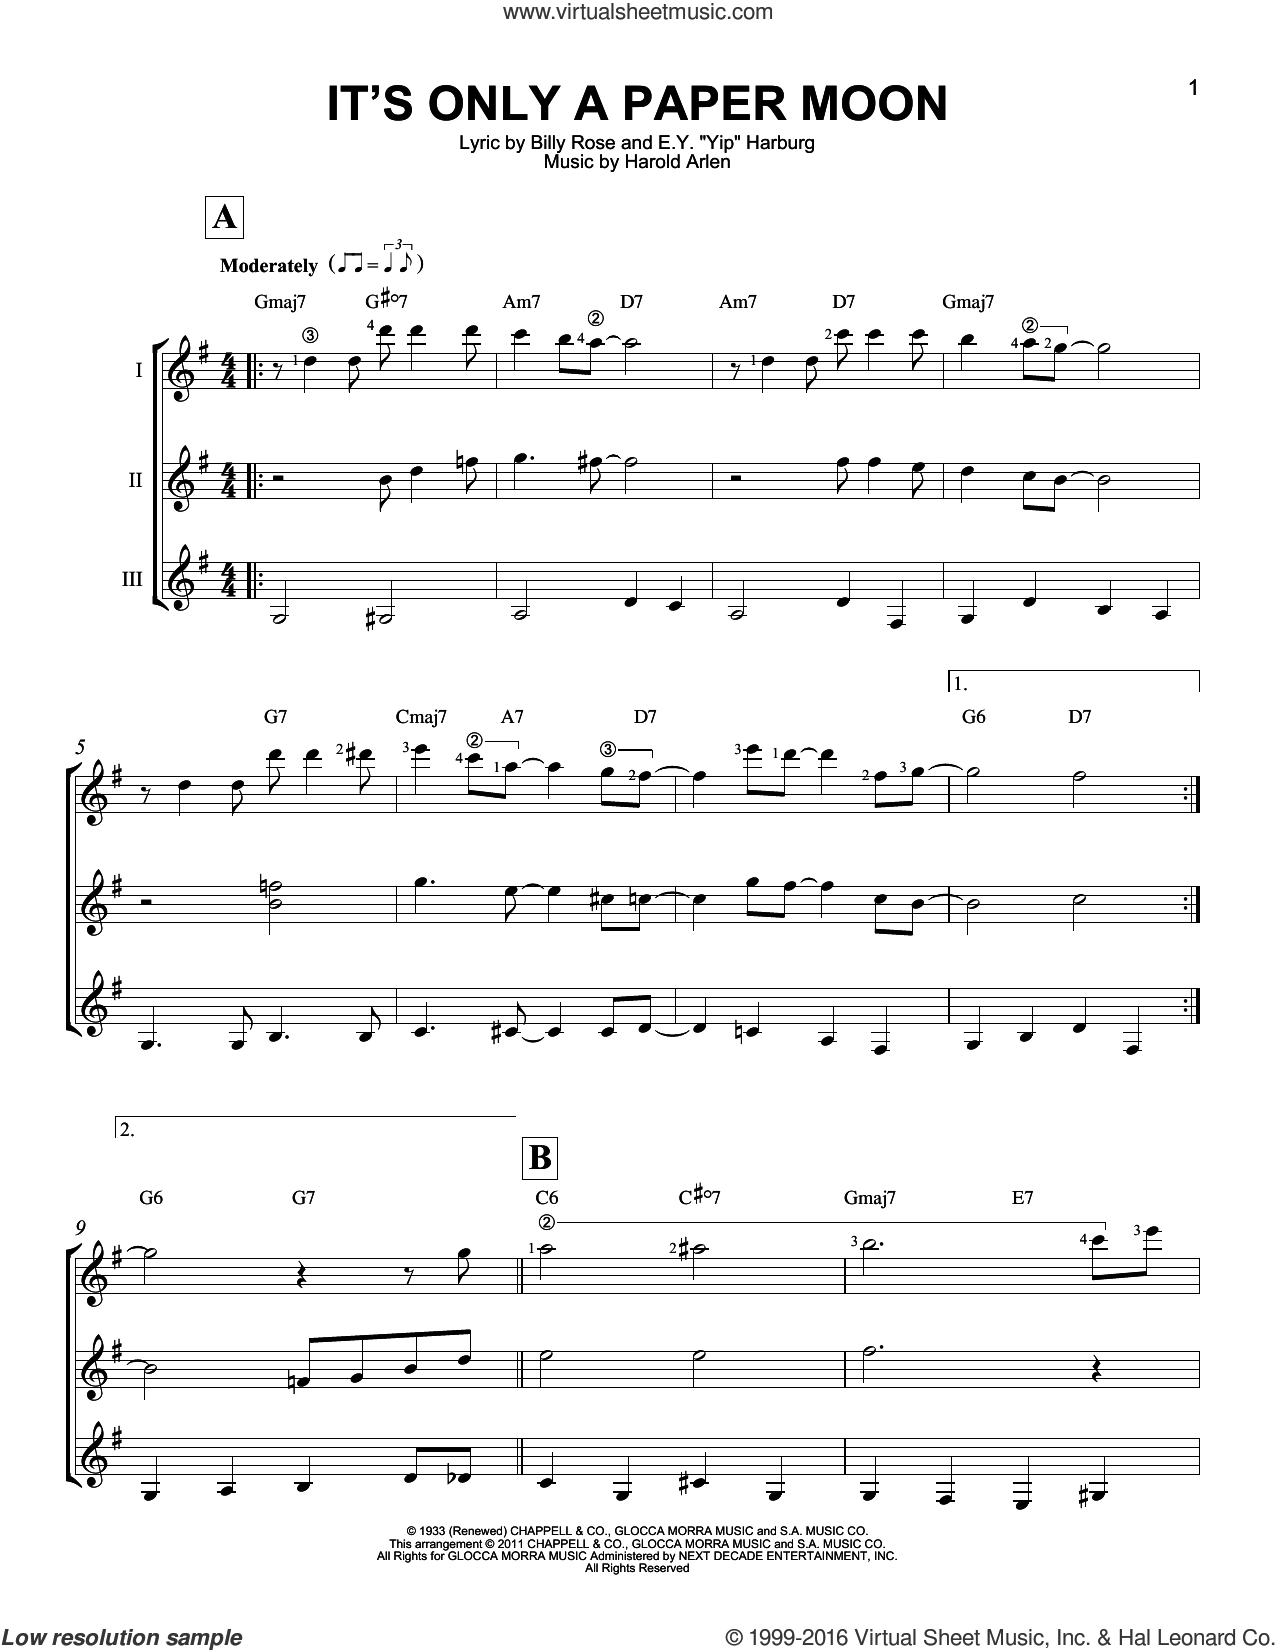 It's Only A Paper Moon sheet music for guitar ensemble by E.Y. Harburg, Billy Rose and Harold Arlen. Score Image Preview.